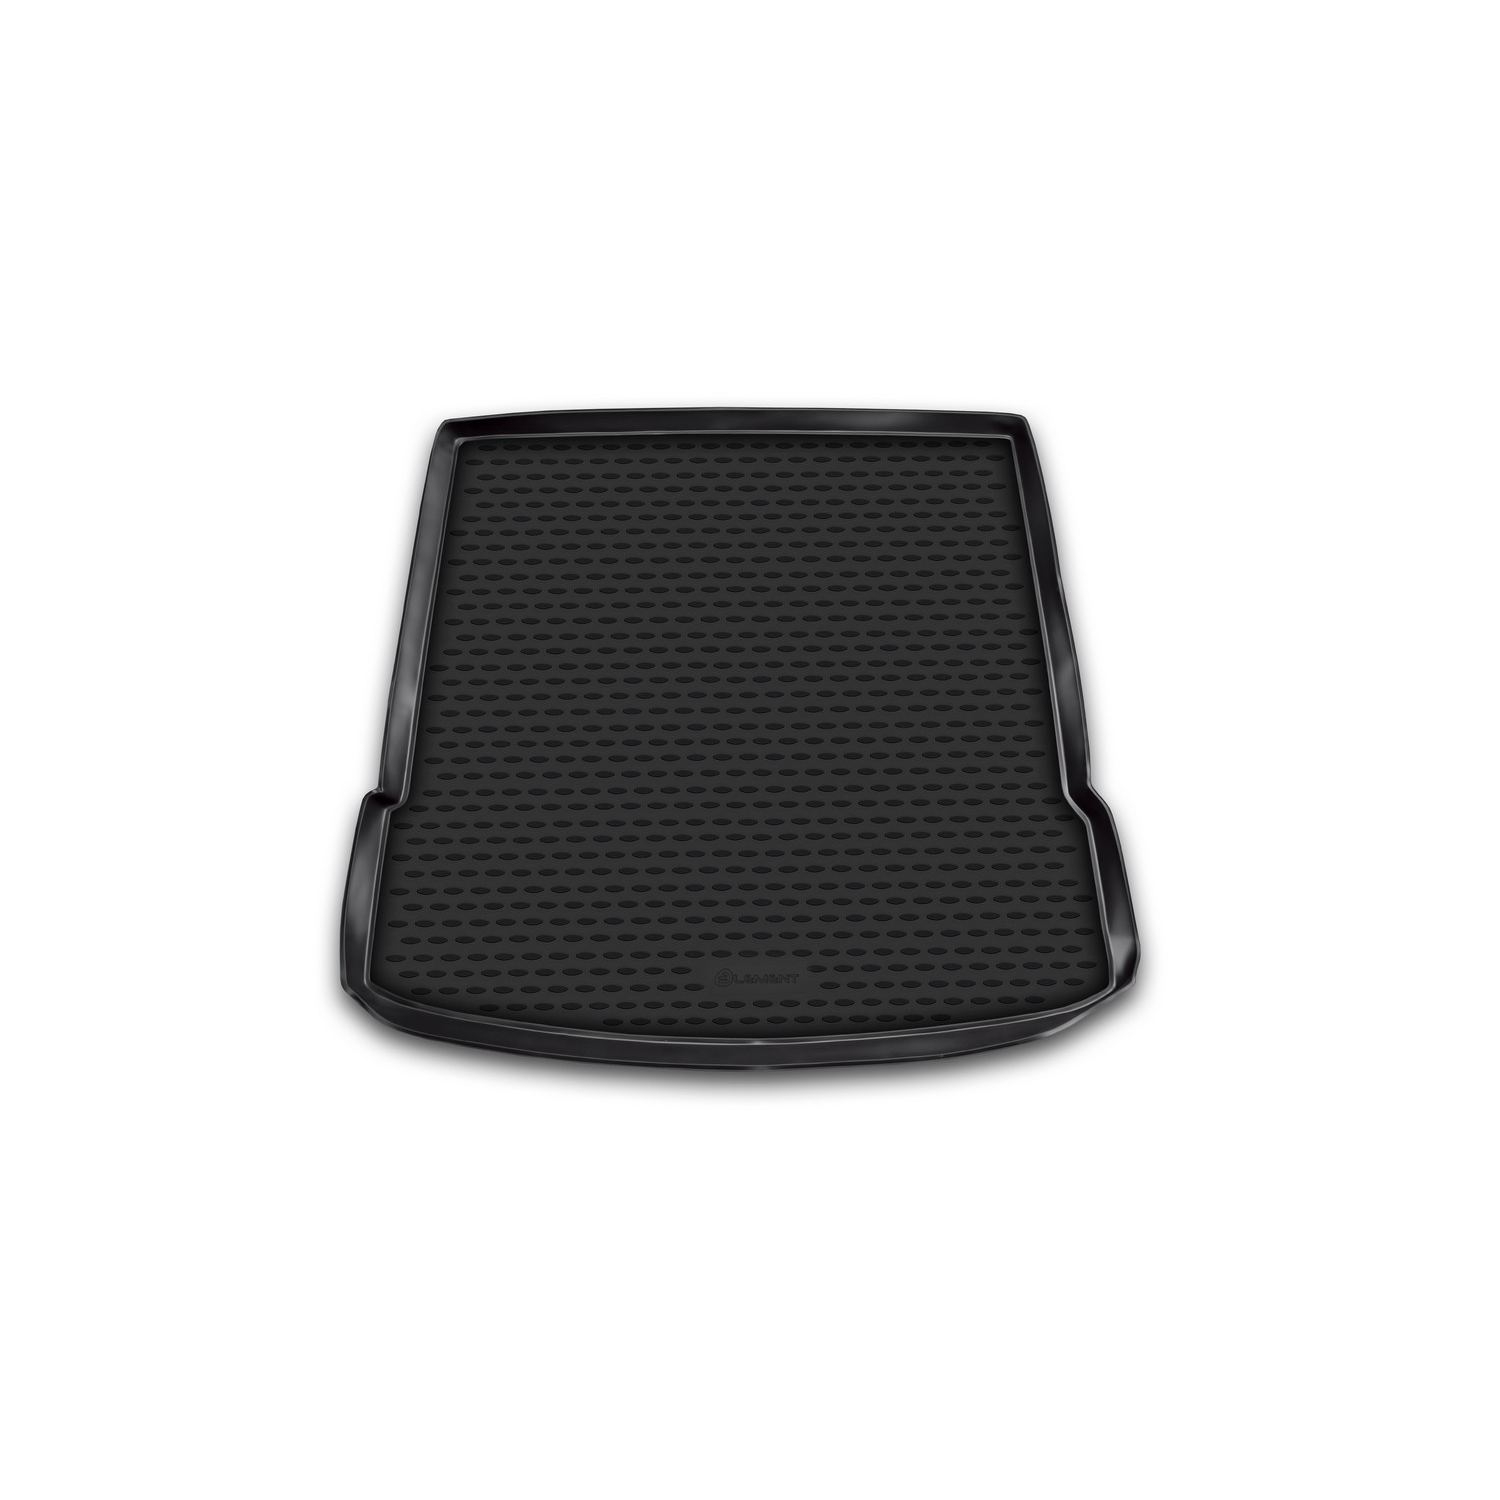 Trunk Mat For KIA Mohave Long 10/2009, The UN. NLC.25.29.B12